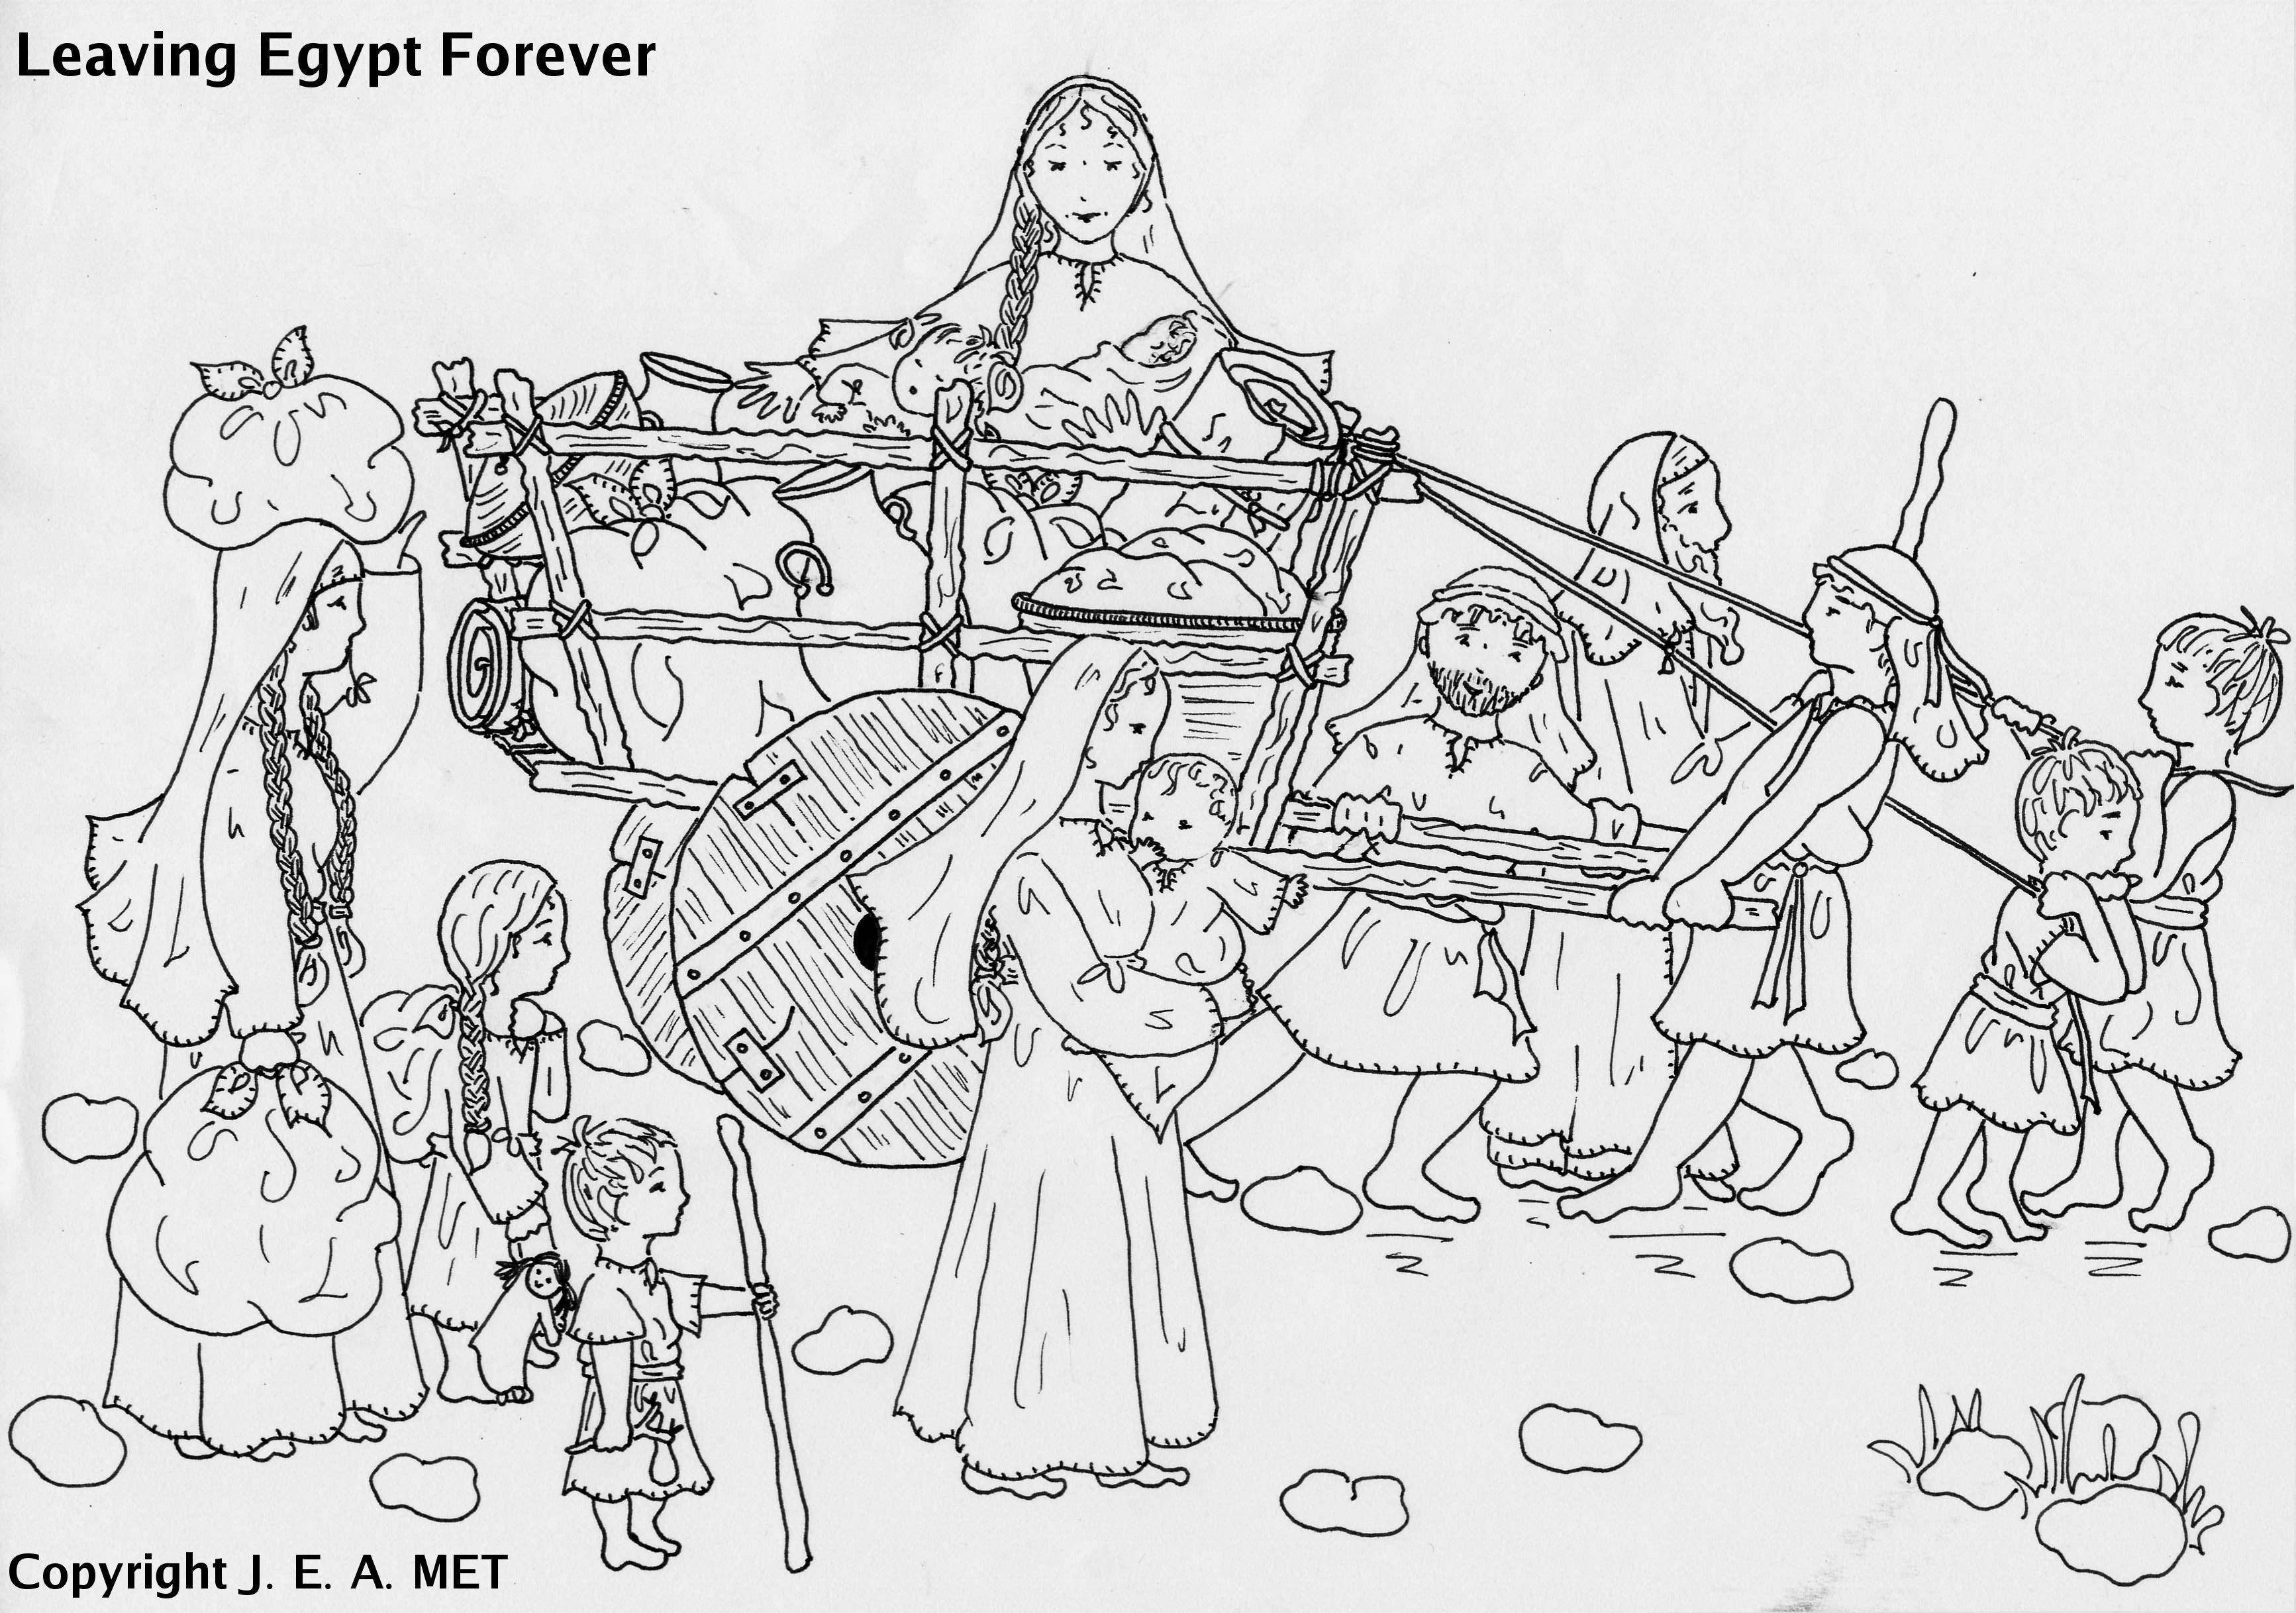 30 Sunday School Coloring Pages for Preschoolers Download - Coloring ...